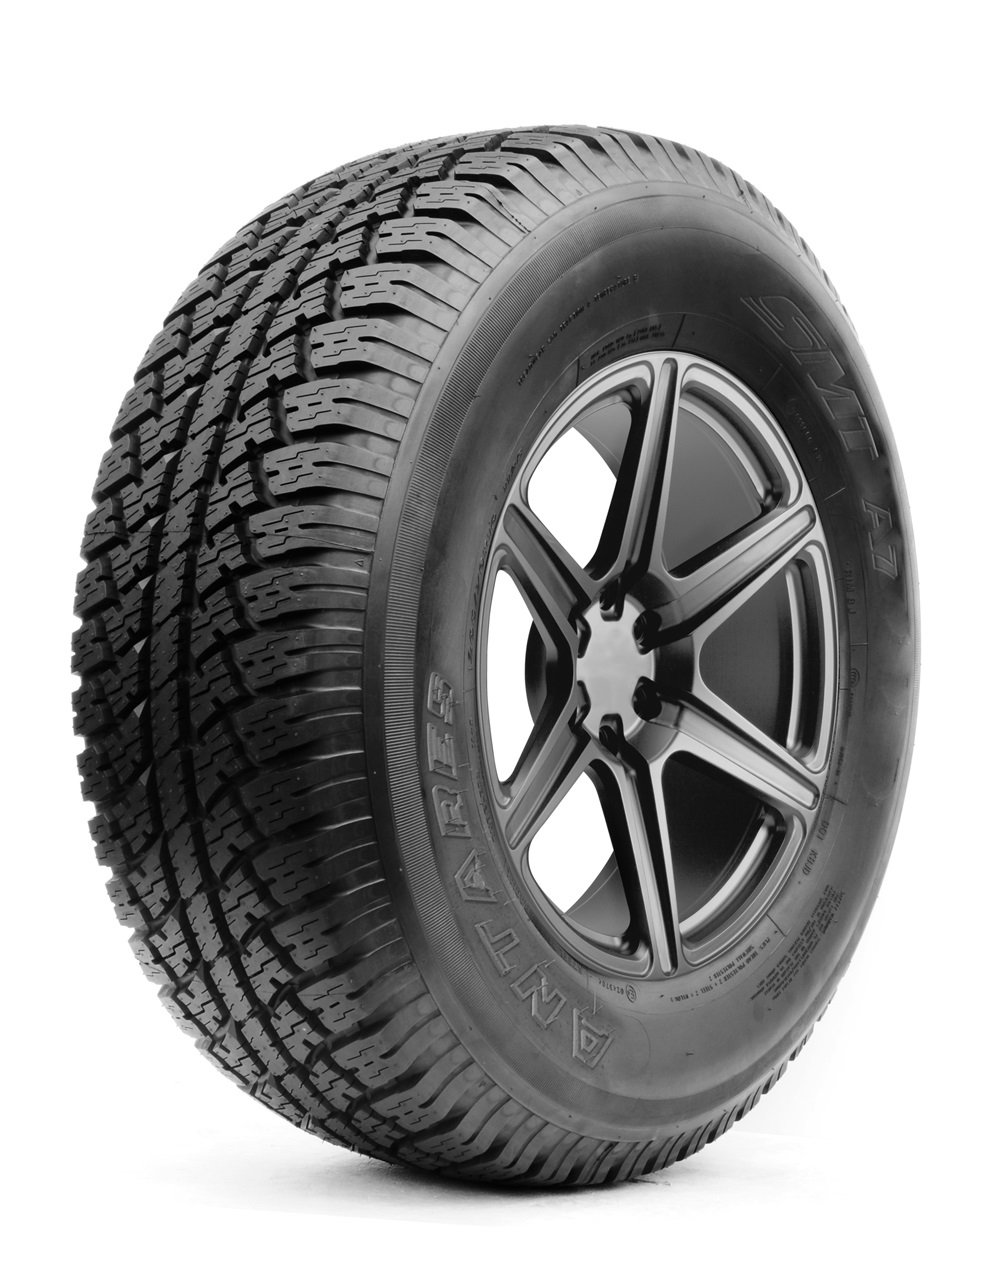 Antares SMT A7 All-Terrain Radial Tire - 235/70R16 106S by Antares (Image #1)